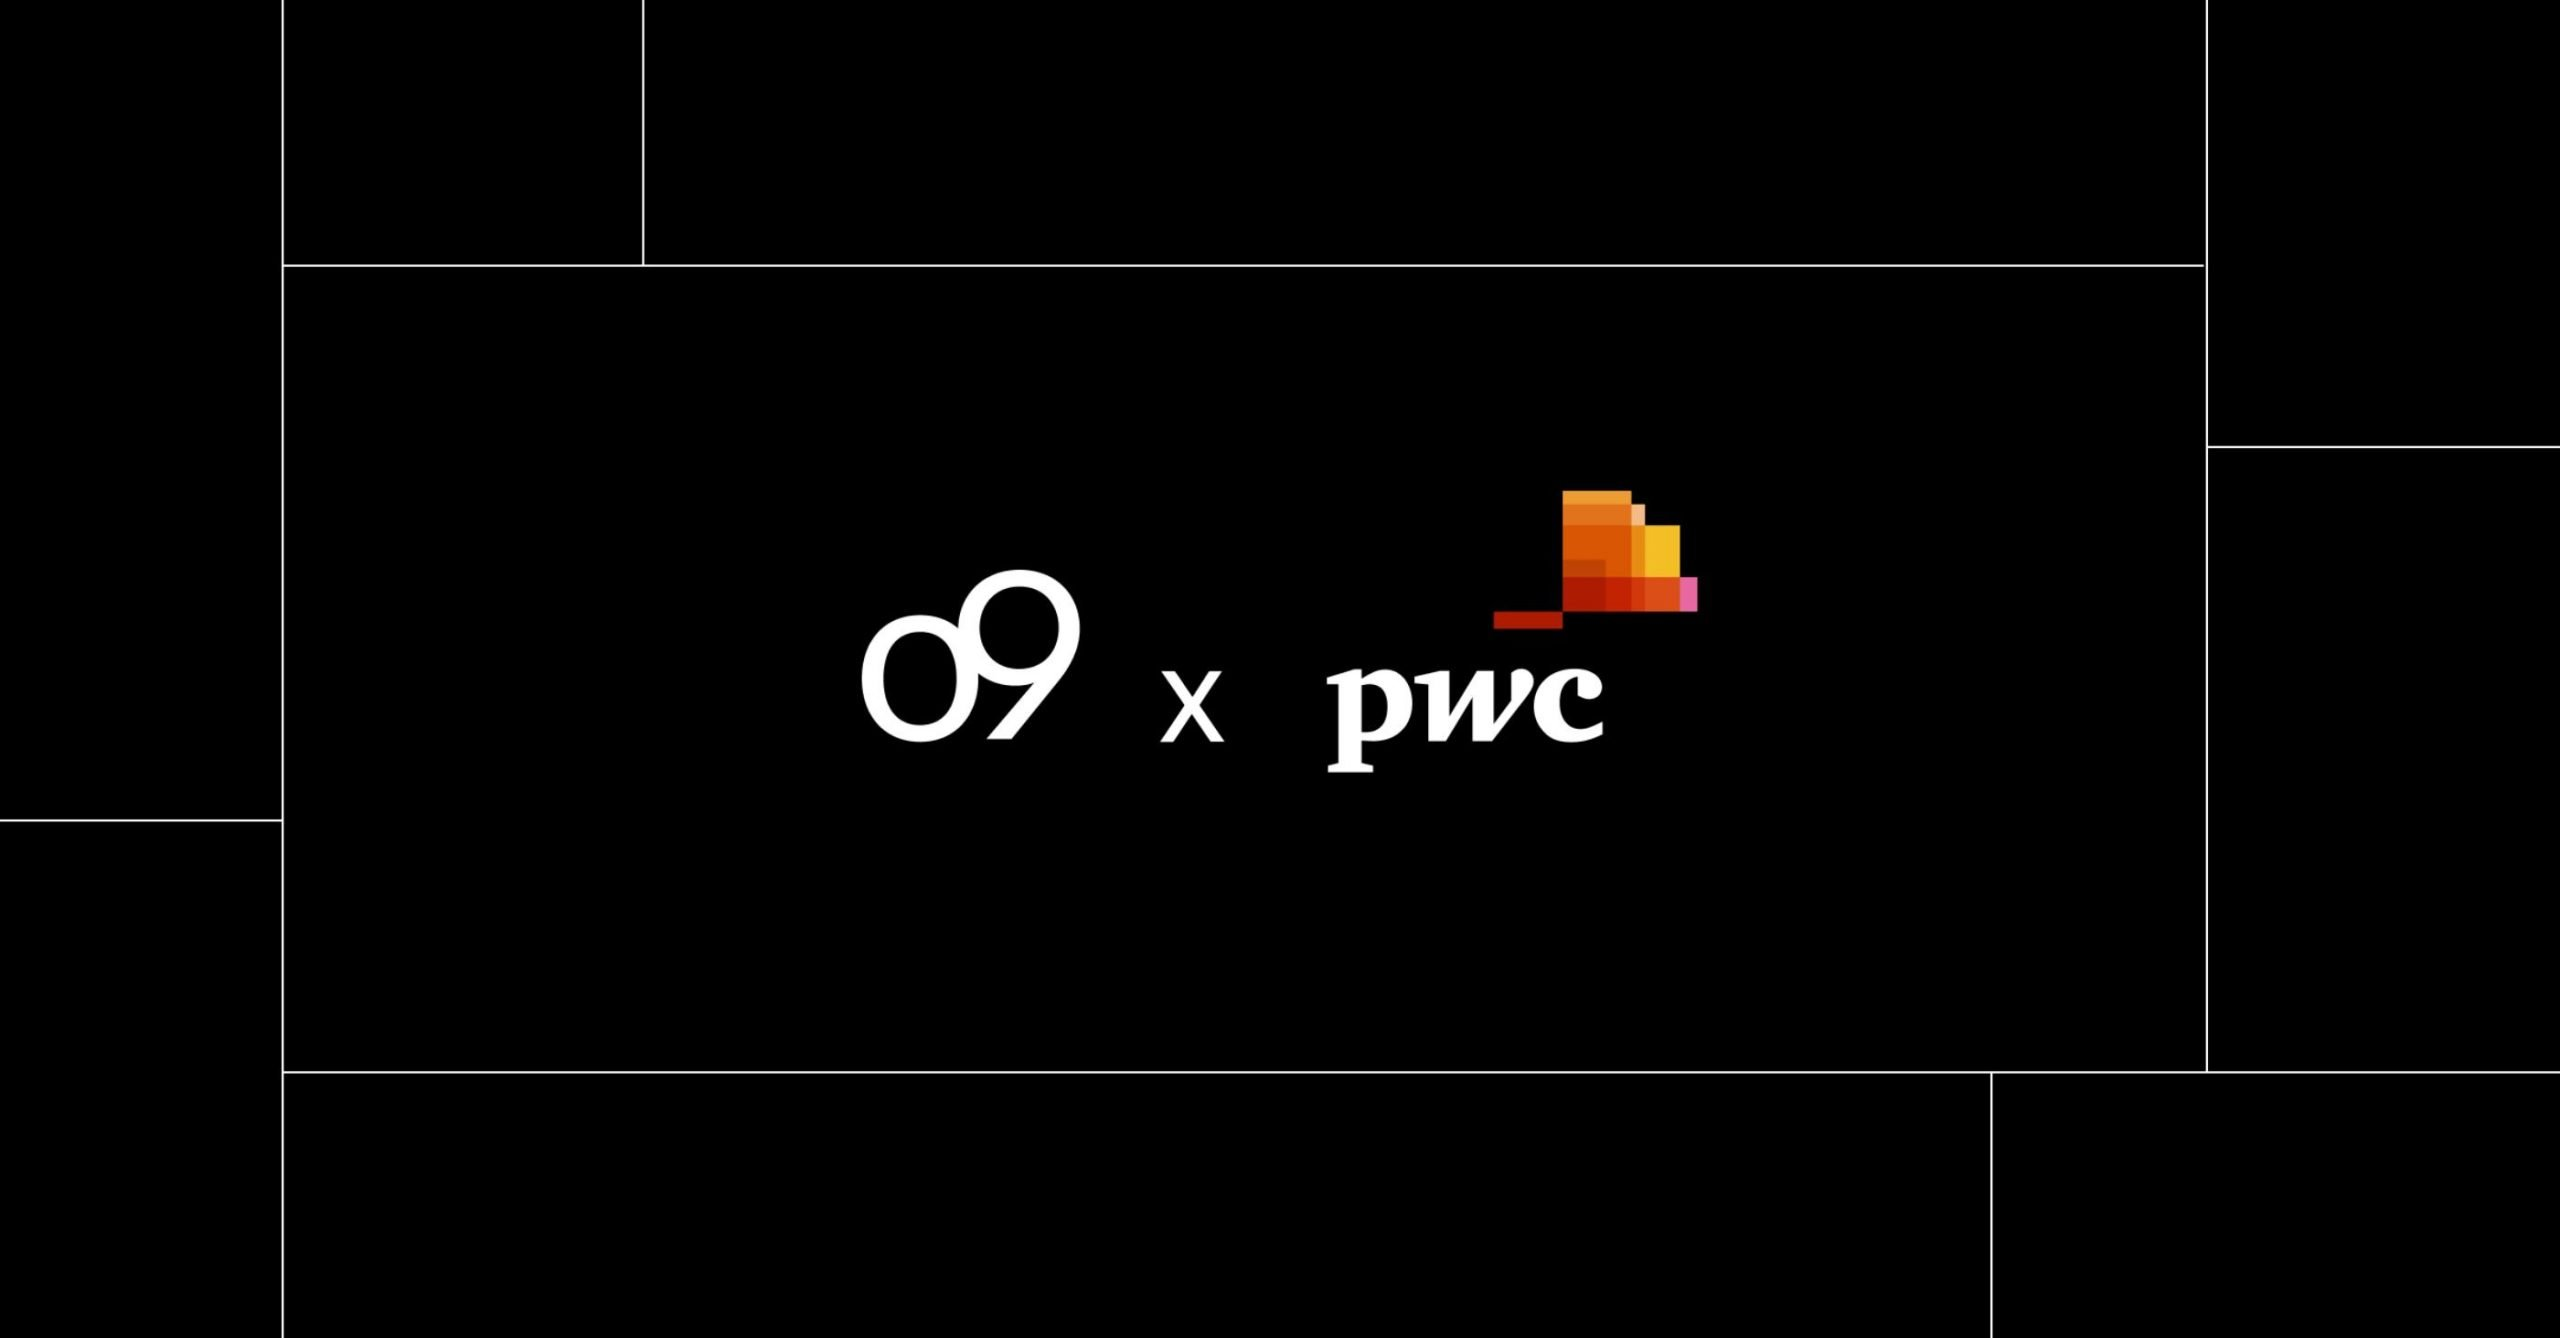 o9 Solutions signs a partnership agreement with PwC